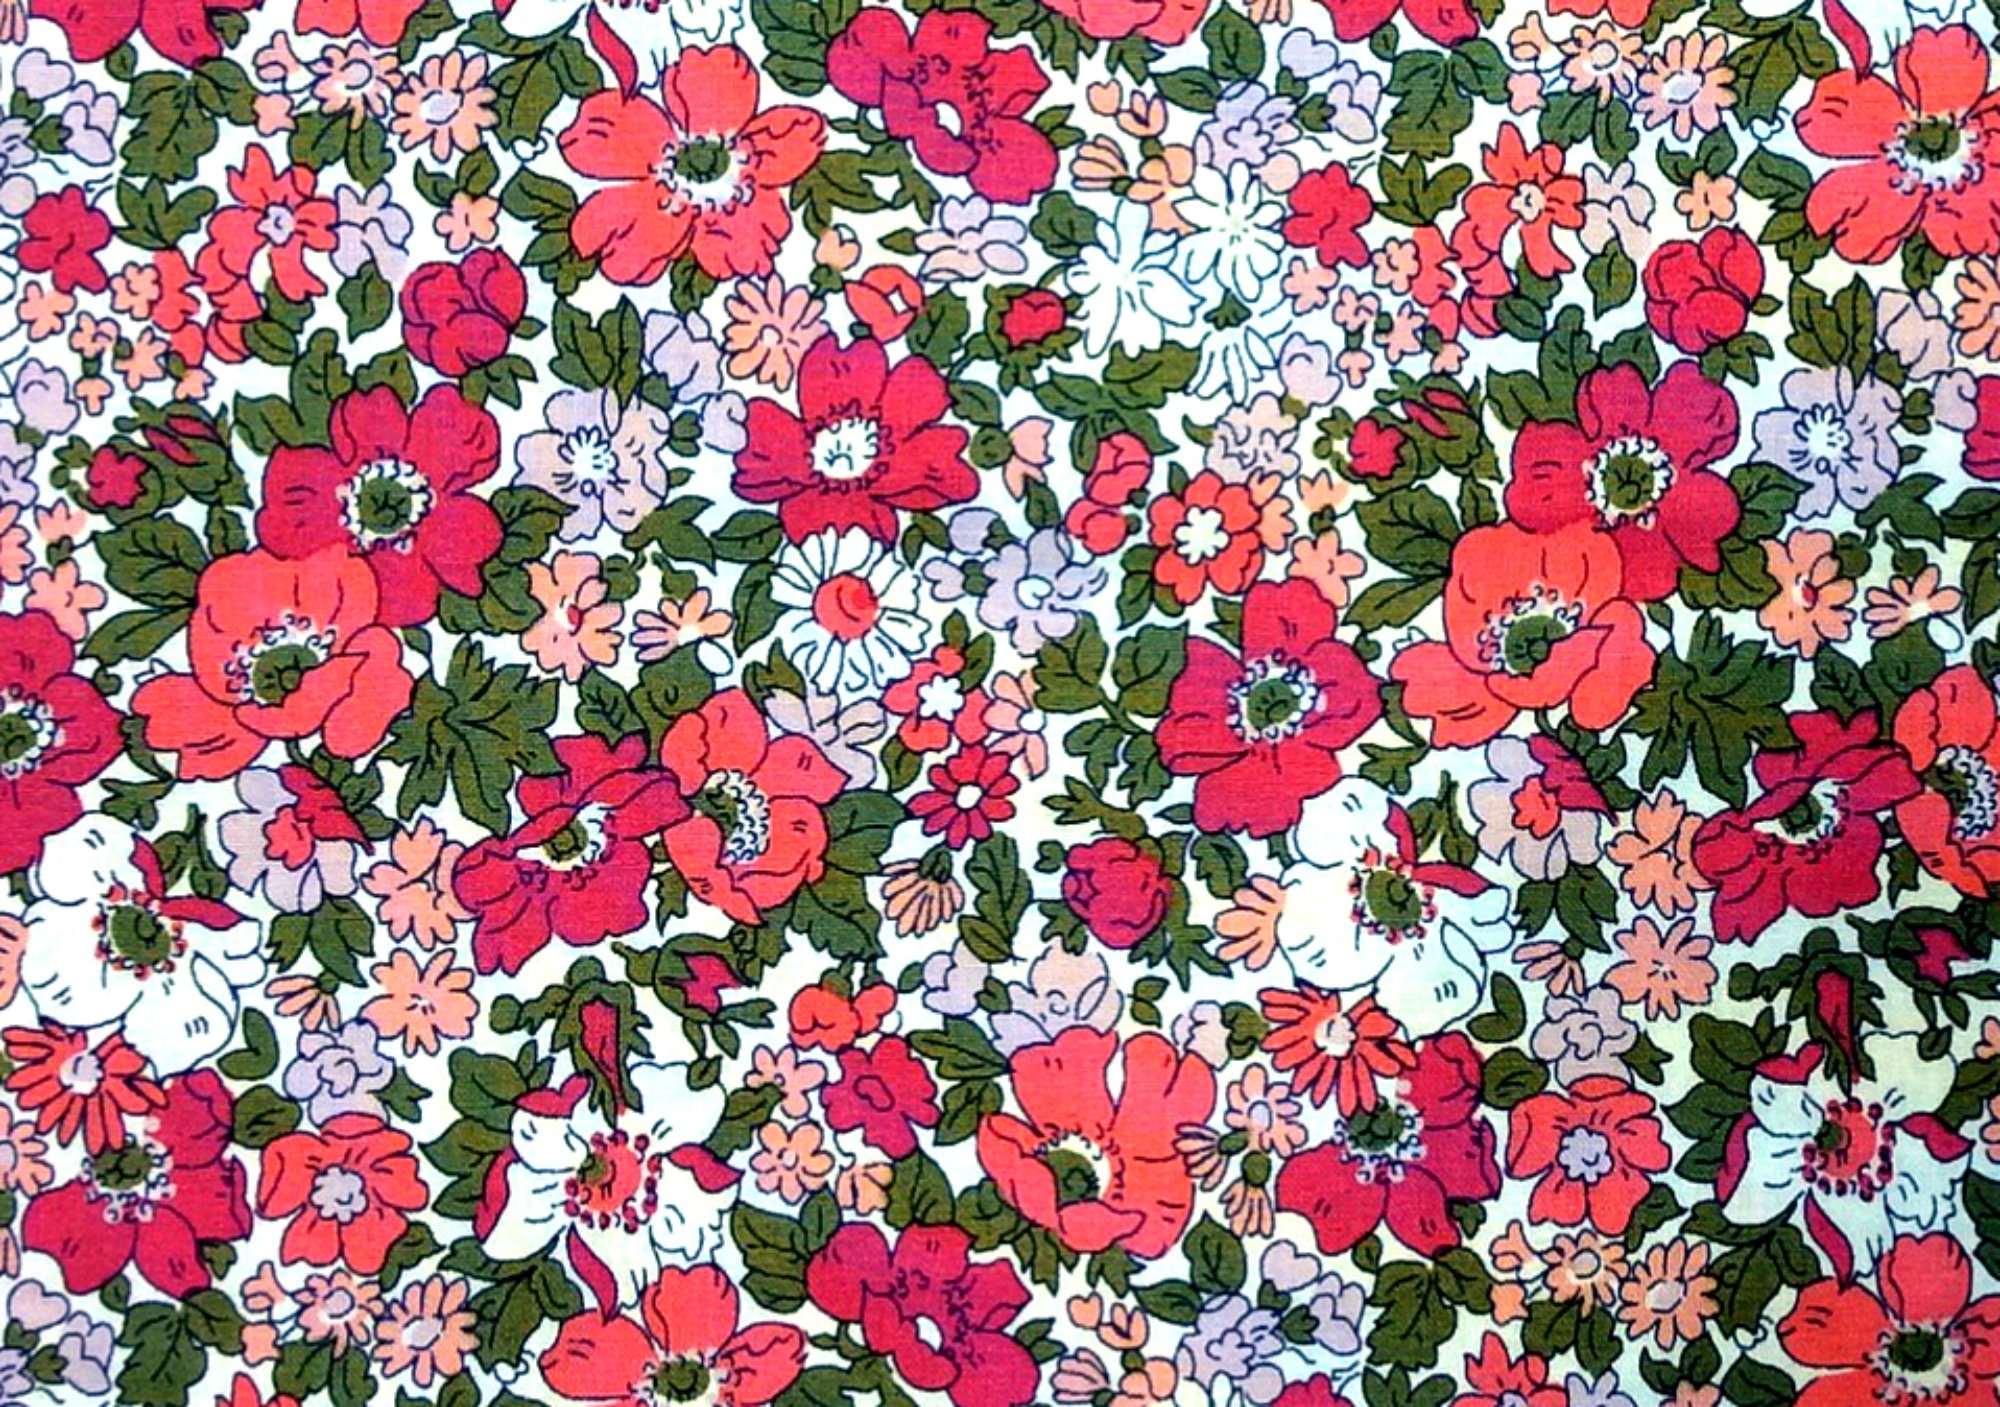 Liberty of London Cosmos Meadow Cotton Quilt Fabric SK48